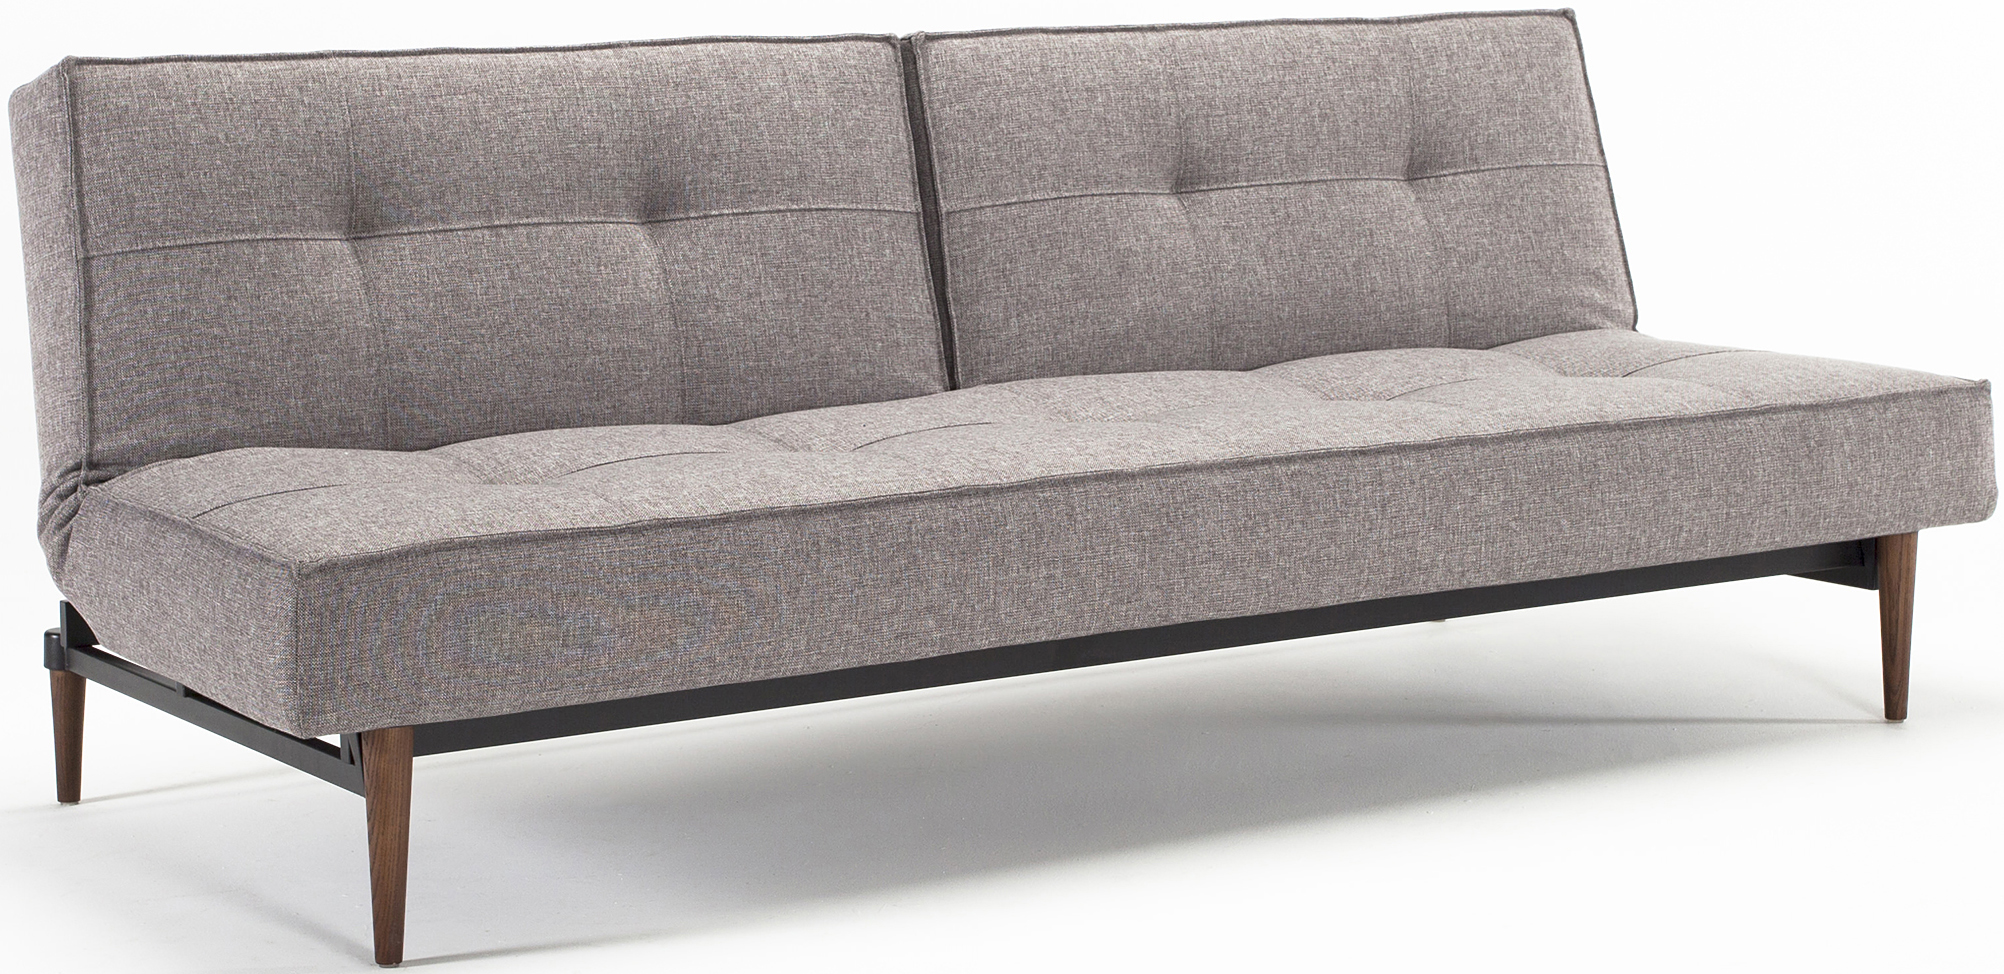 the innovation living splitback sofa